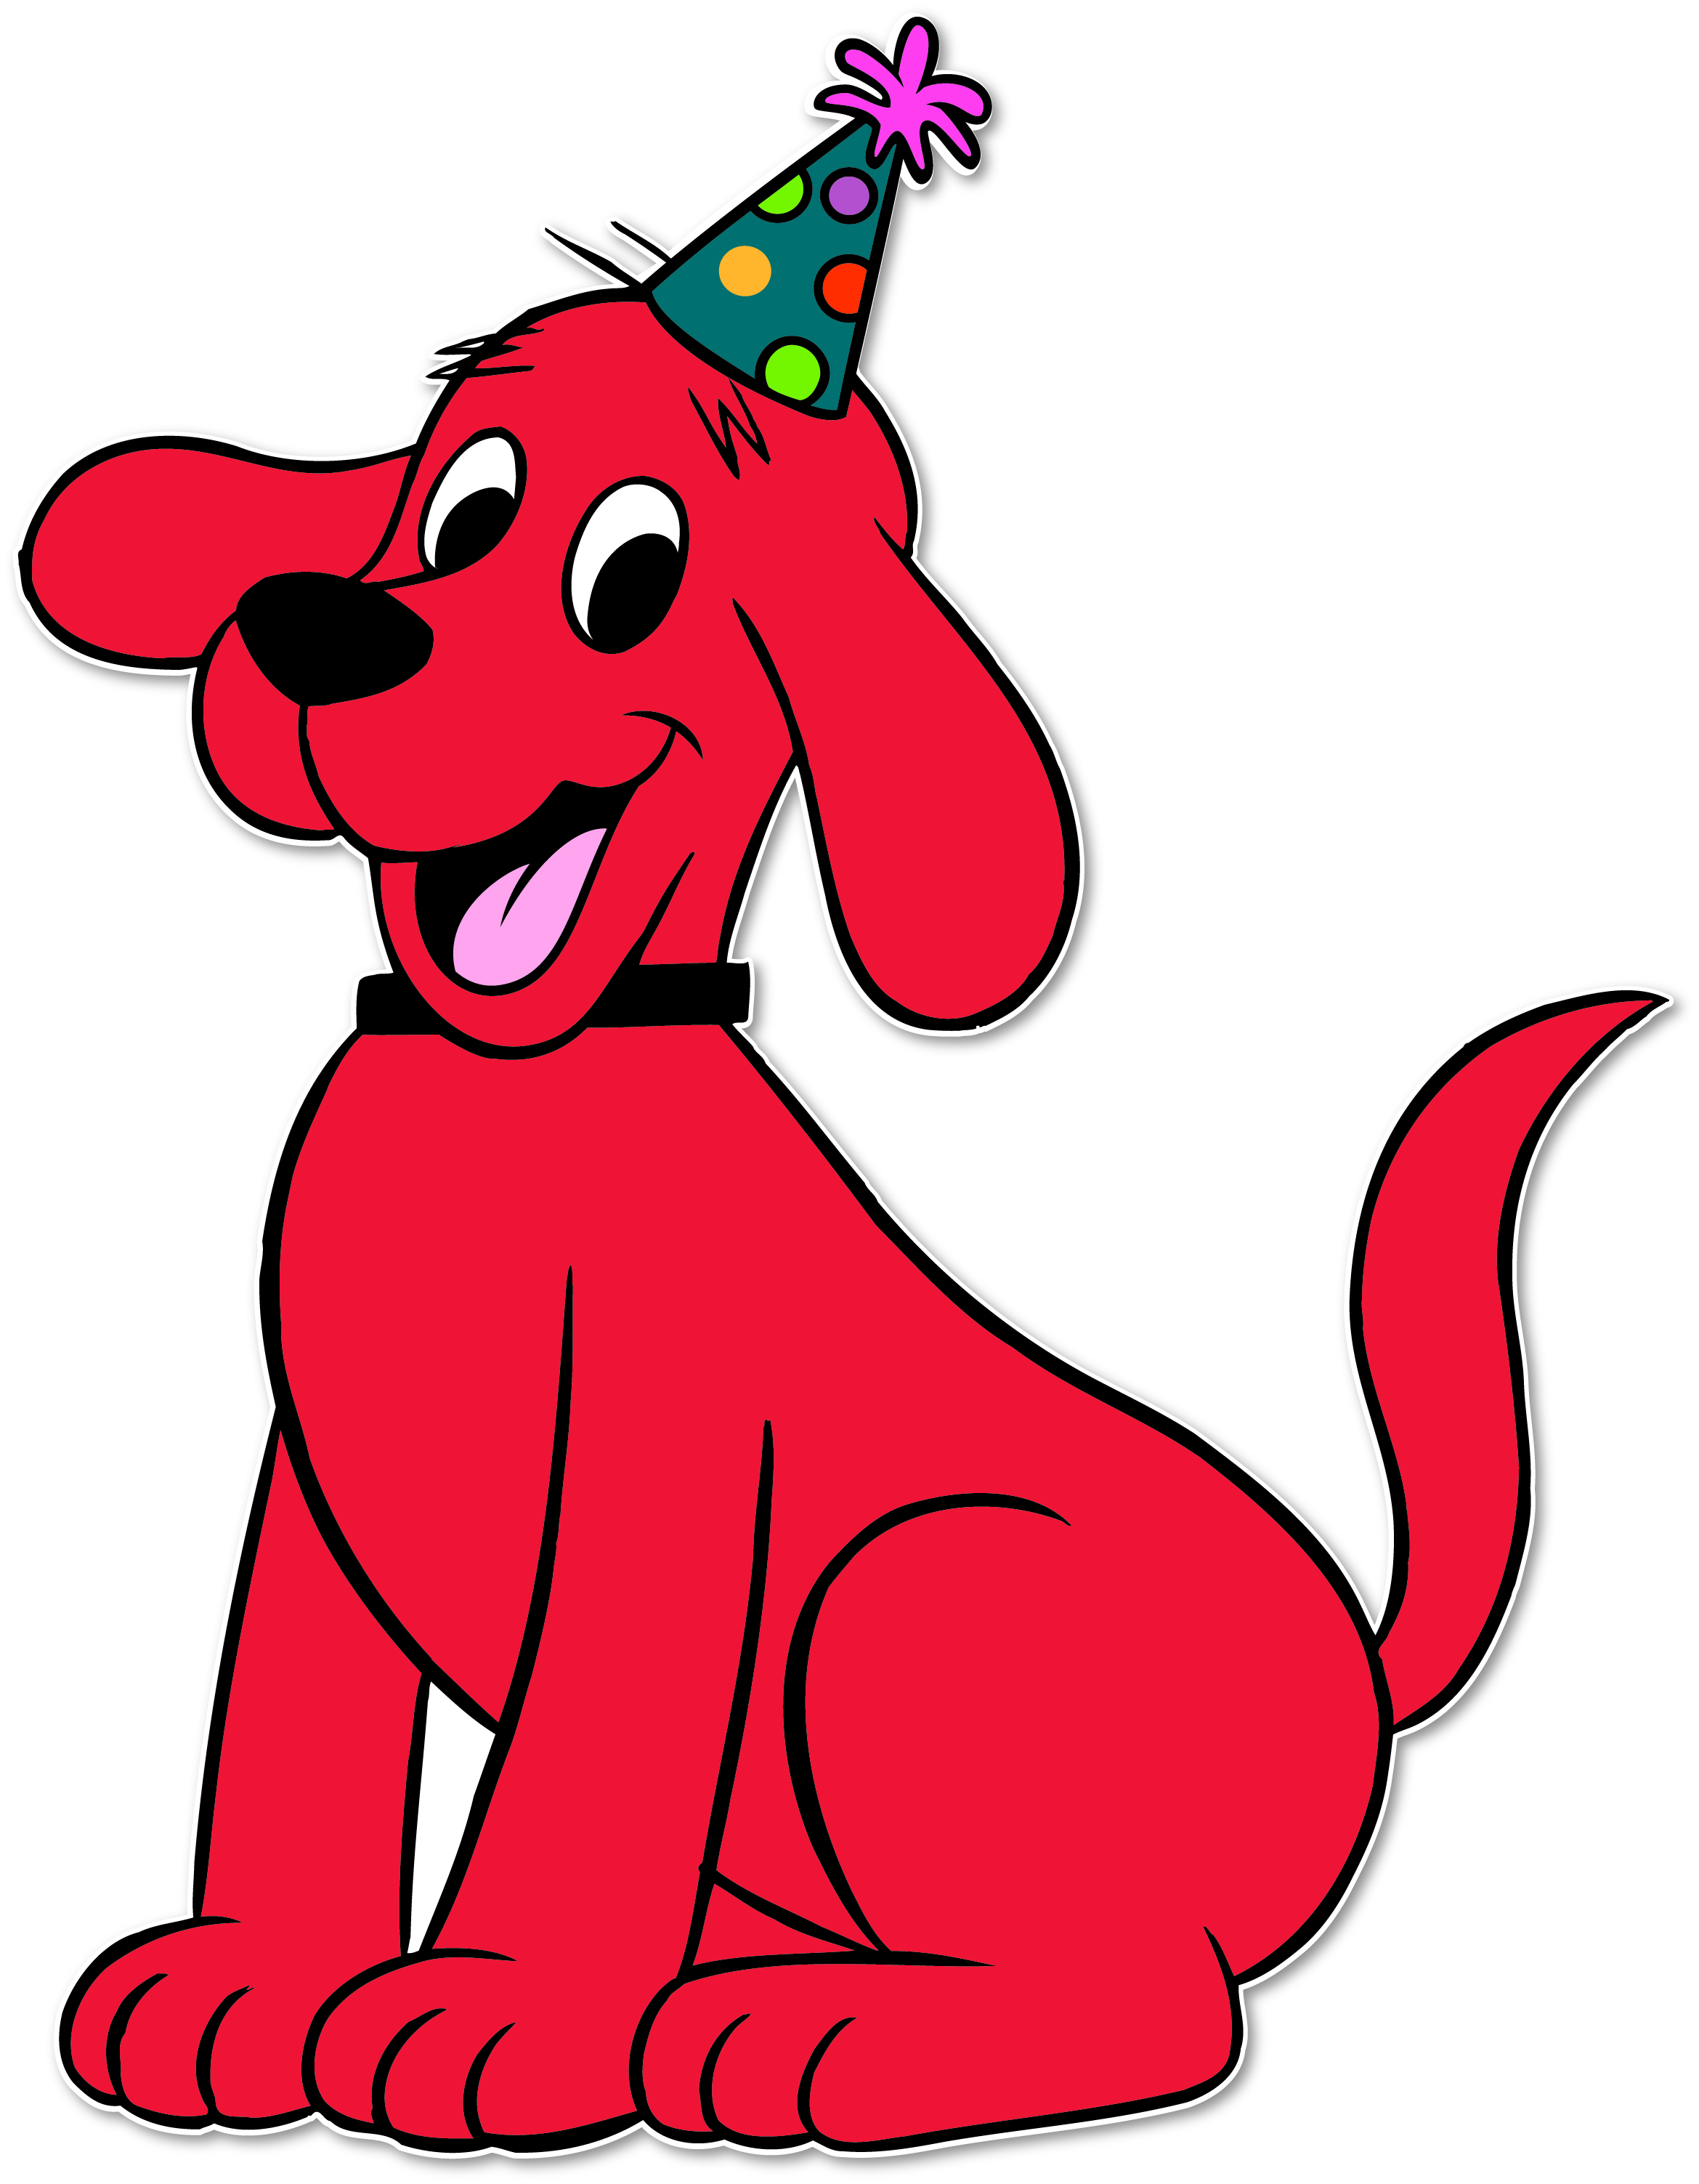 It is a graphic of Crafty Clifford the Big Red Dog Clipart